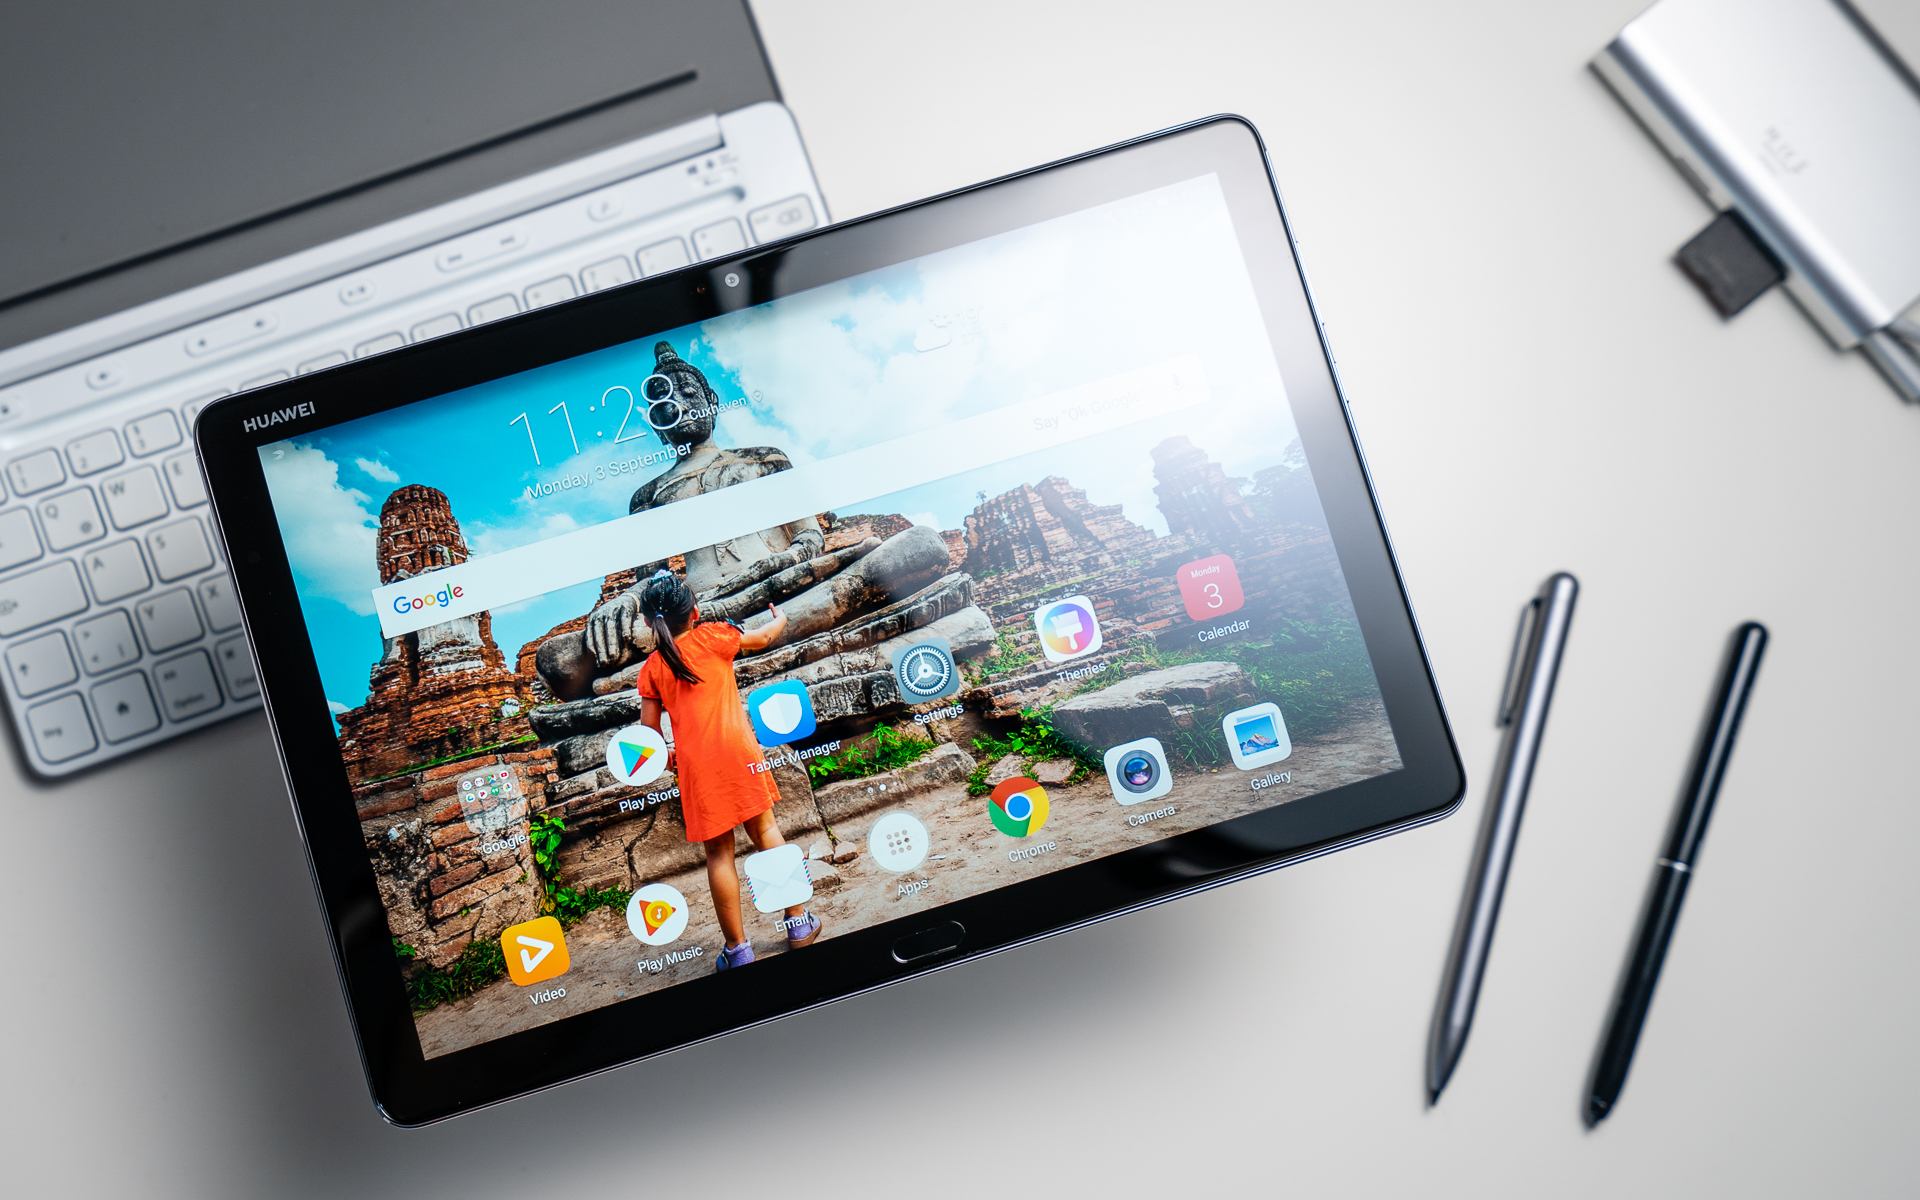 Huawei MediaPad M5 Lite 10 Review: An Excellent Value